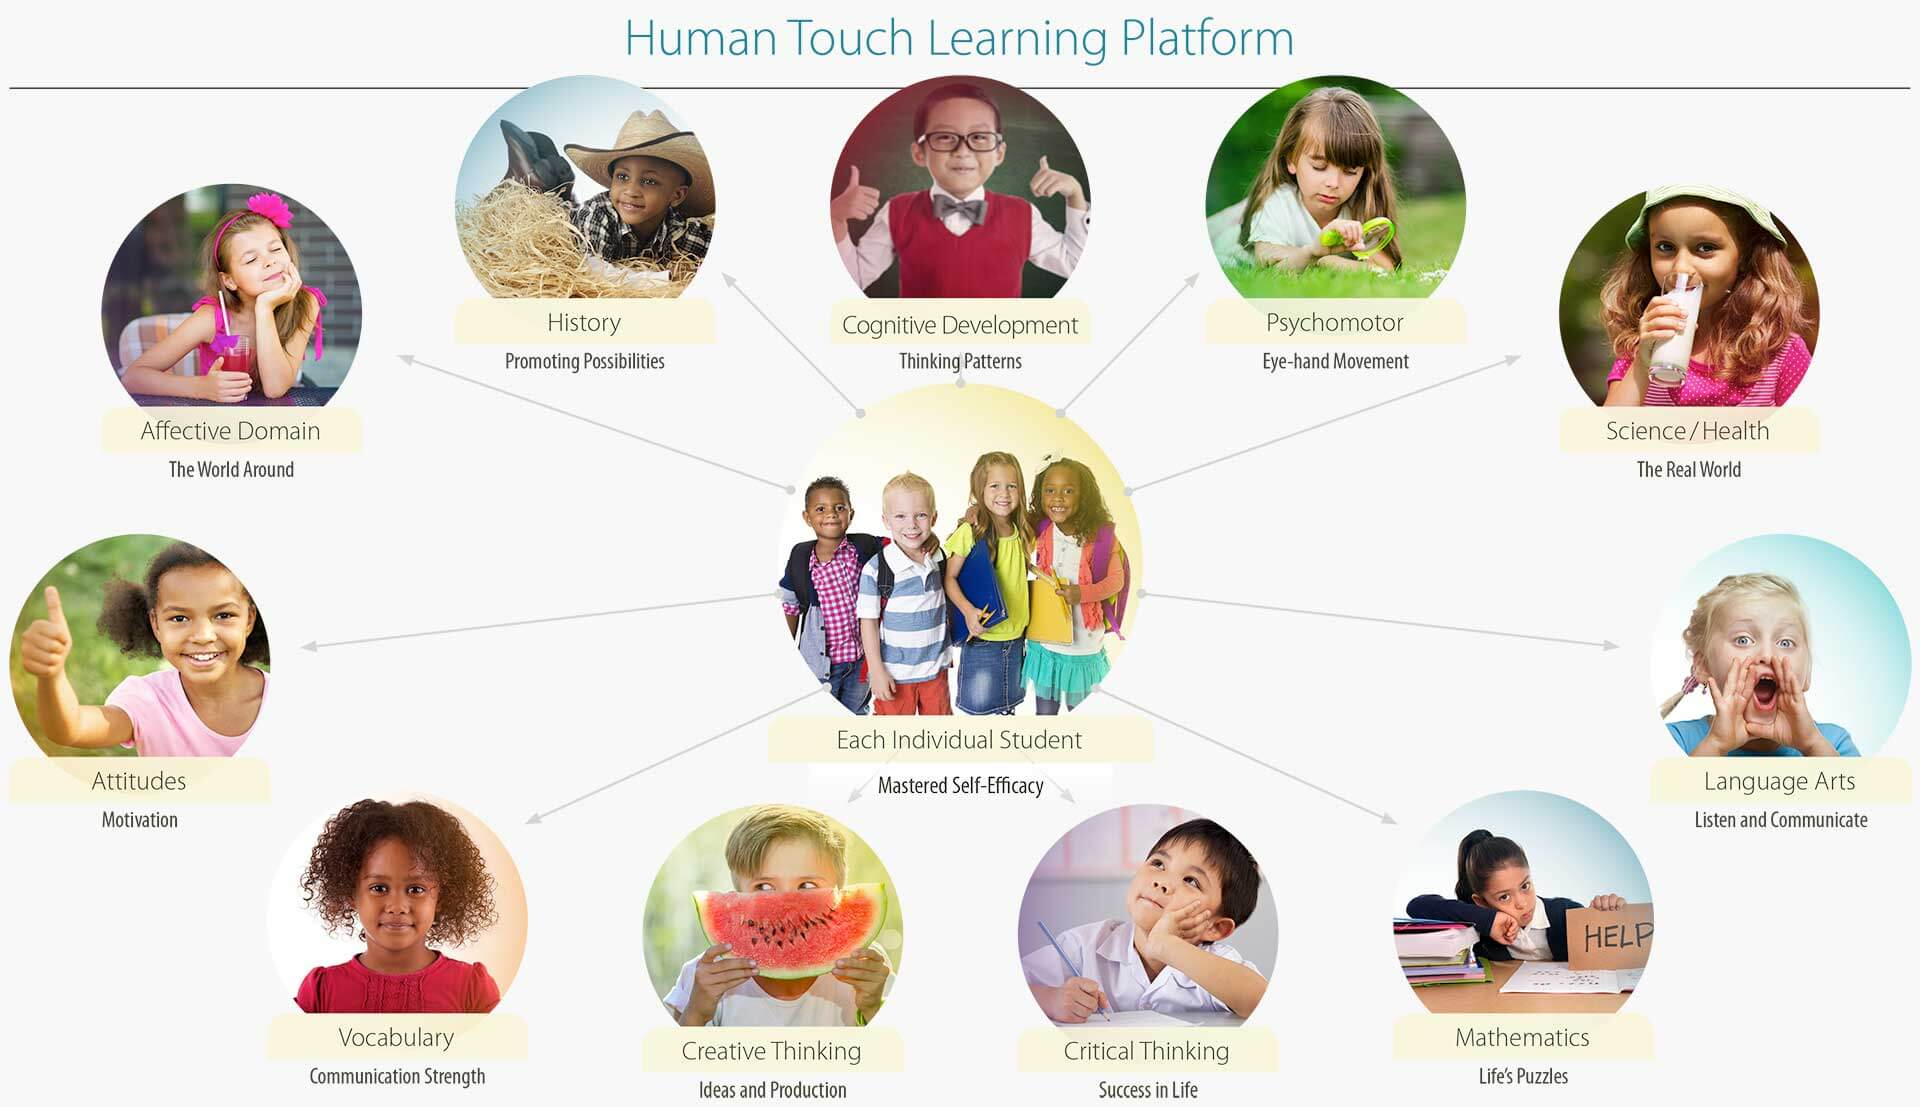 Human Touch Learning Platform Chart